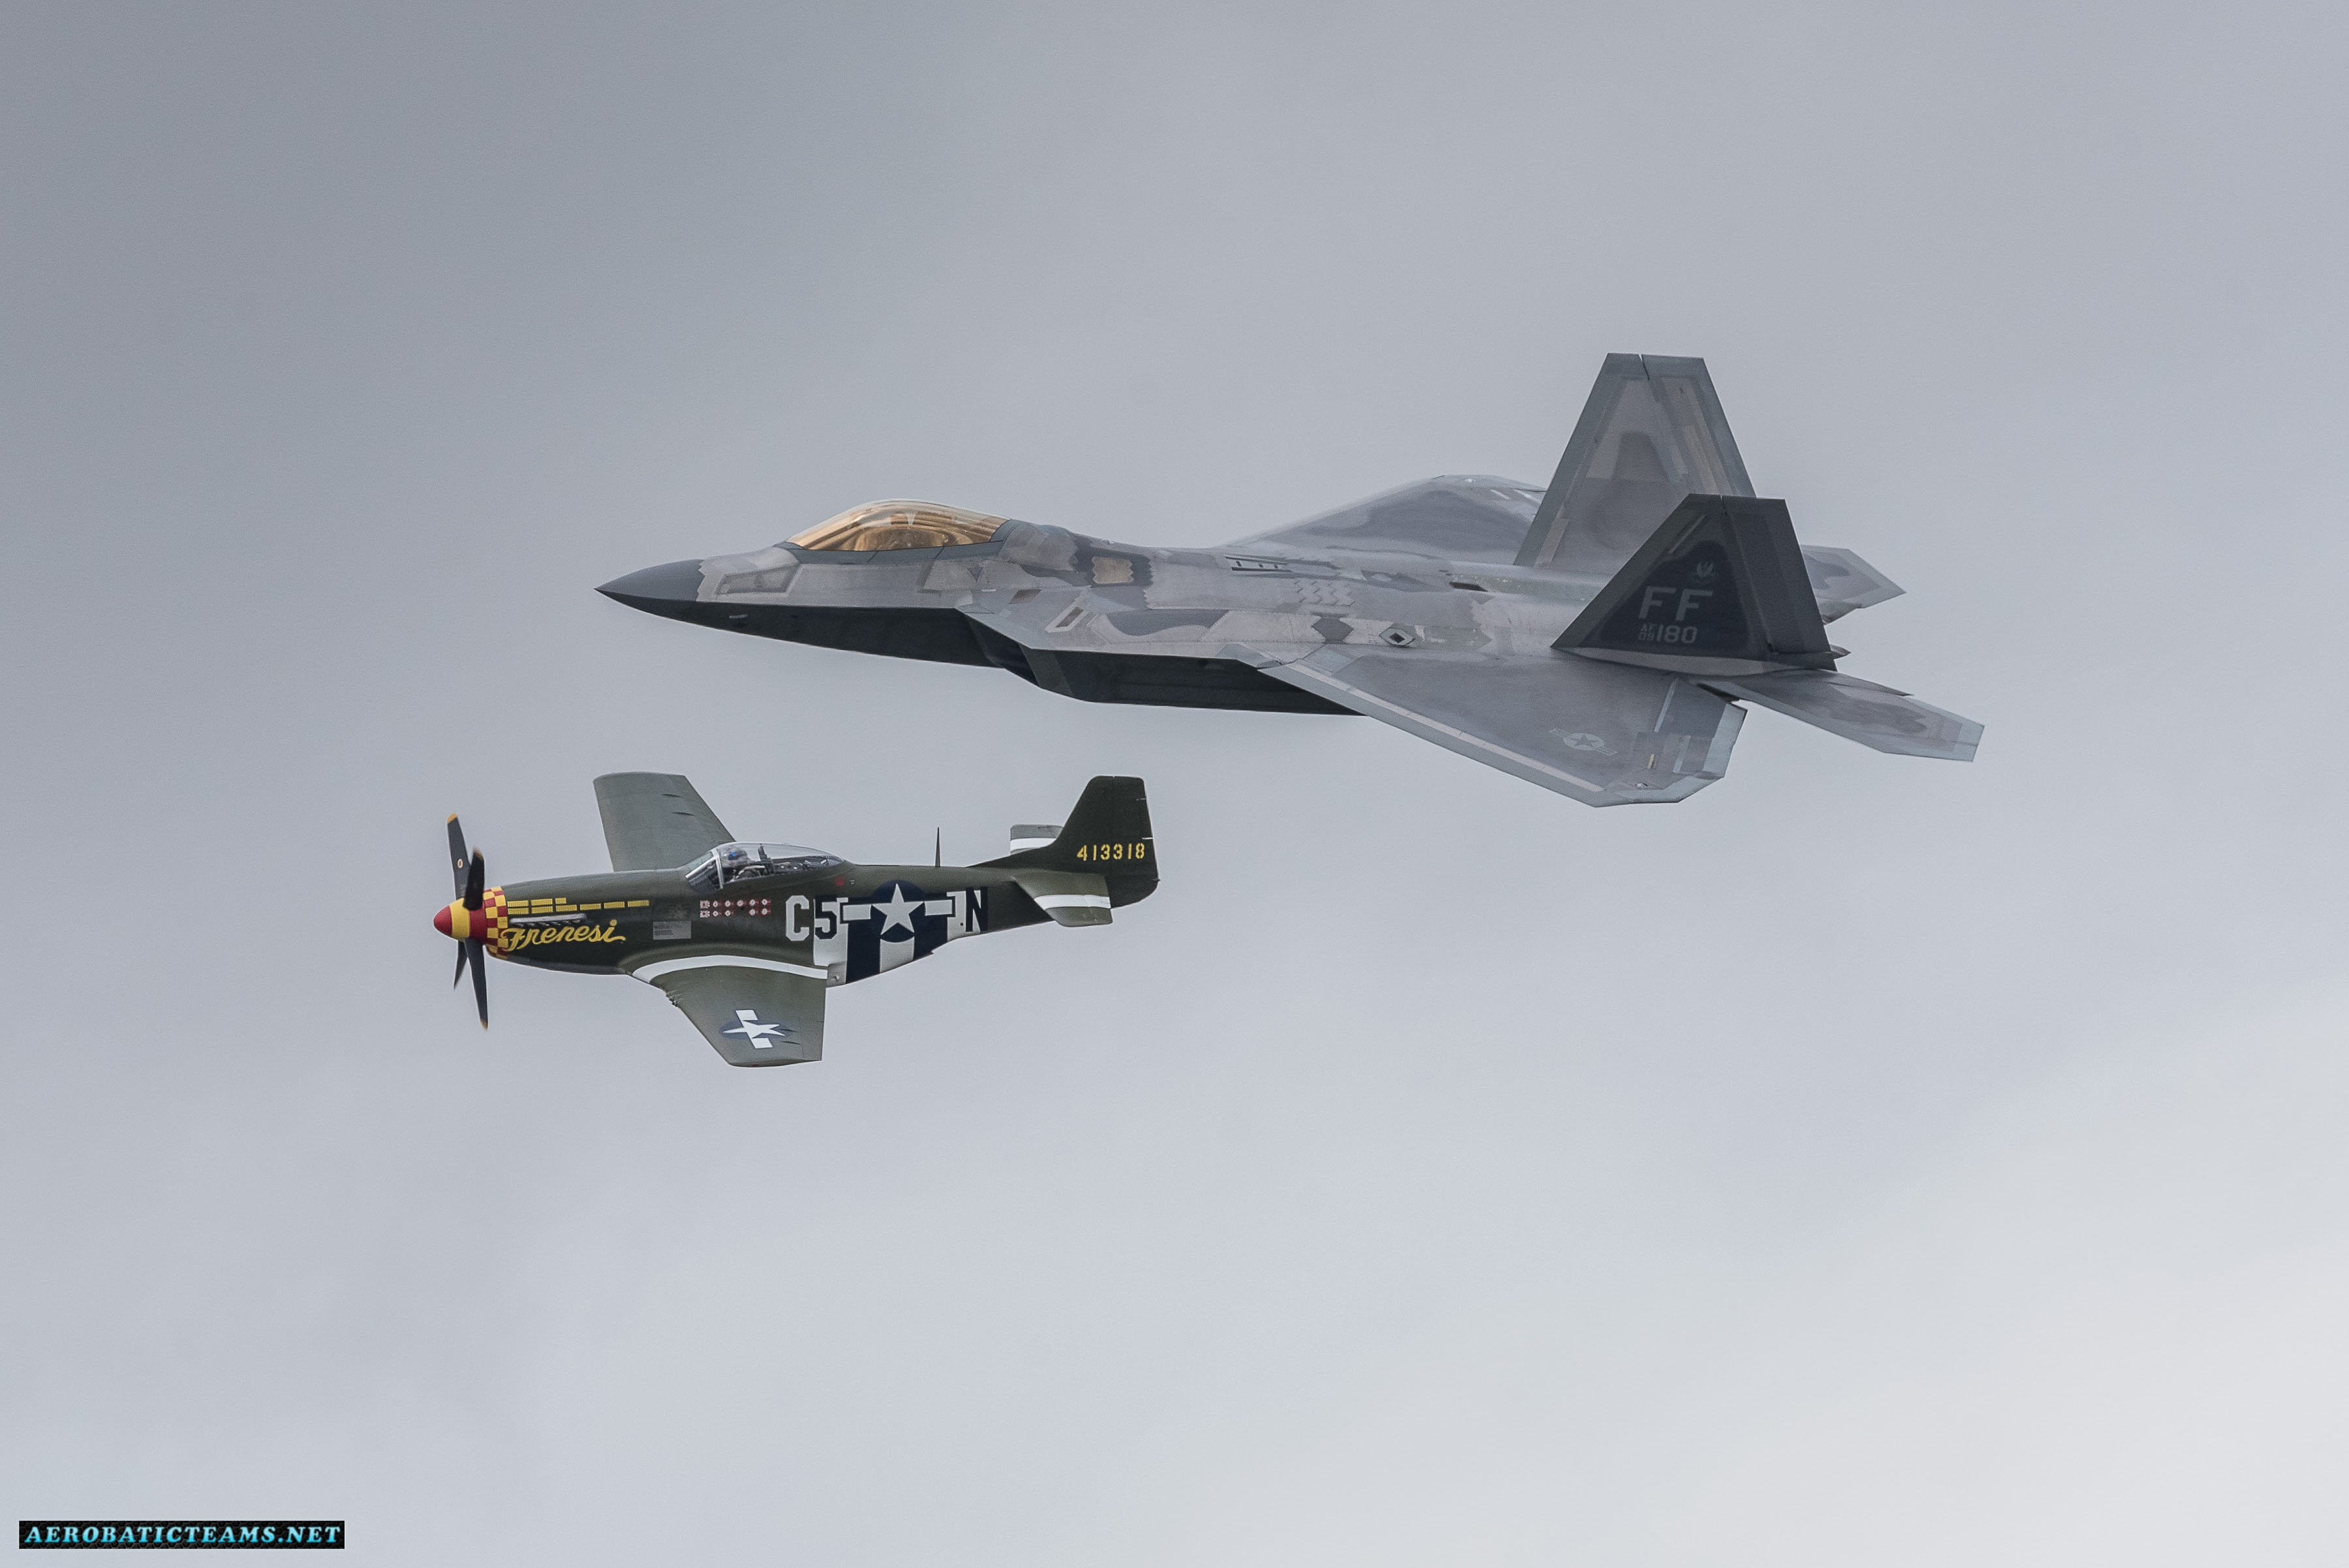 F-22 Raptor Heritage Flight in formation with P-51 Mustang